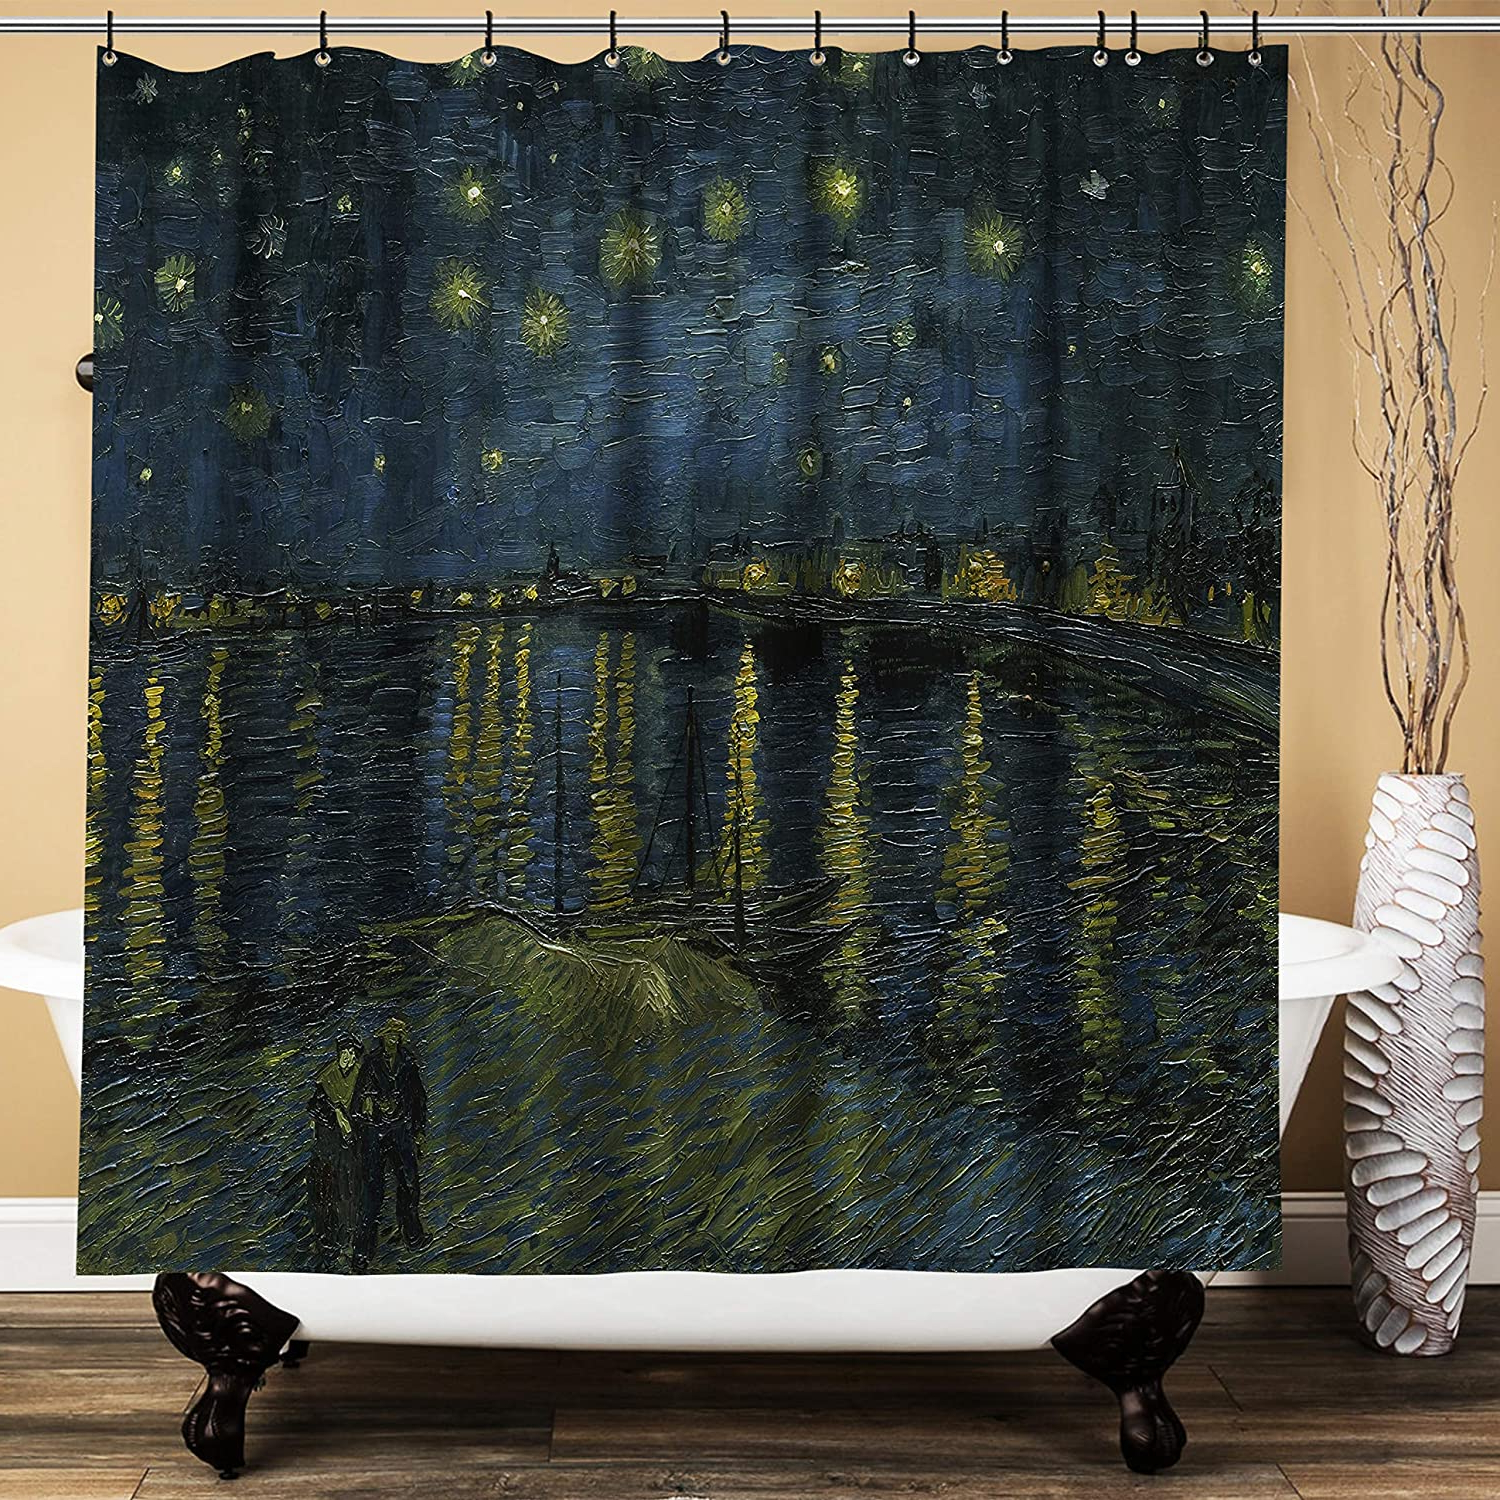 Spanker Space Artistic Van Gogh Starry Night Over The Rhone Aesthetic Oil Painting Waterproof Fabric Bath Shower Curtain 71x71 Inches With Hooks For Within Well Known Blended Fabric Van Gogh Starry Night Over The Rhone Wall Hangings (View 11 of 20)